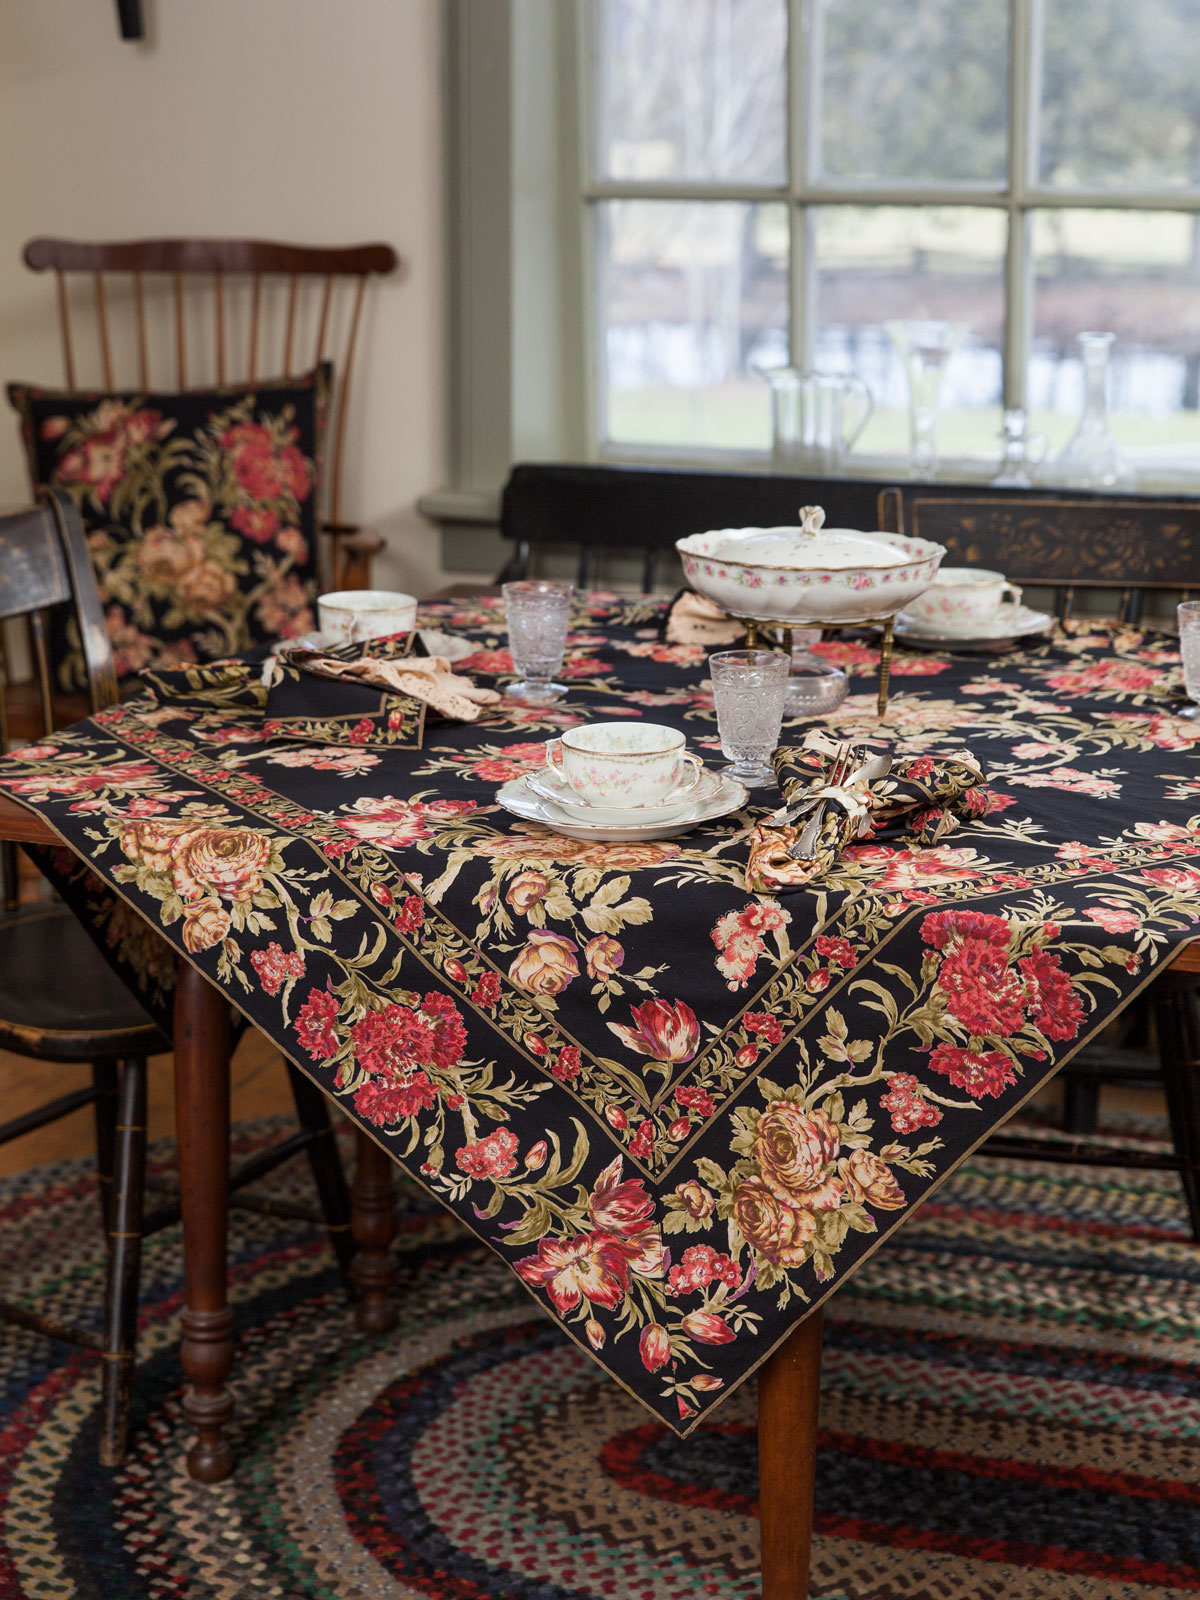 conservatory tablecloth attic linens kitchen tpconc black for inch round accent table beautiful designs cornell leather dining room chairs kmart desk lamp target vases tall